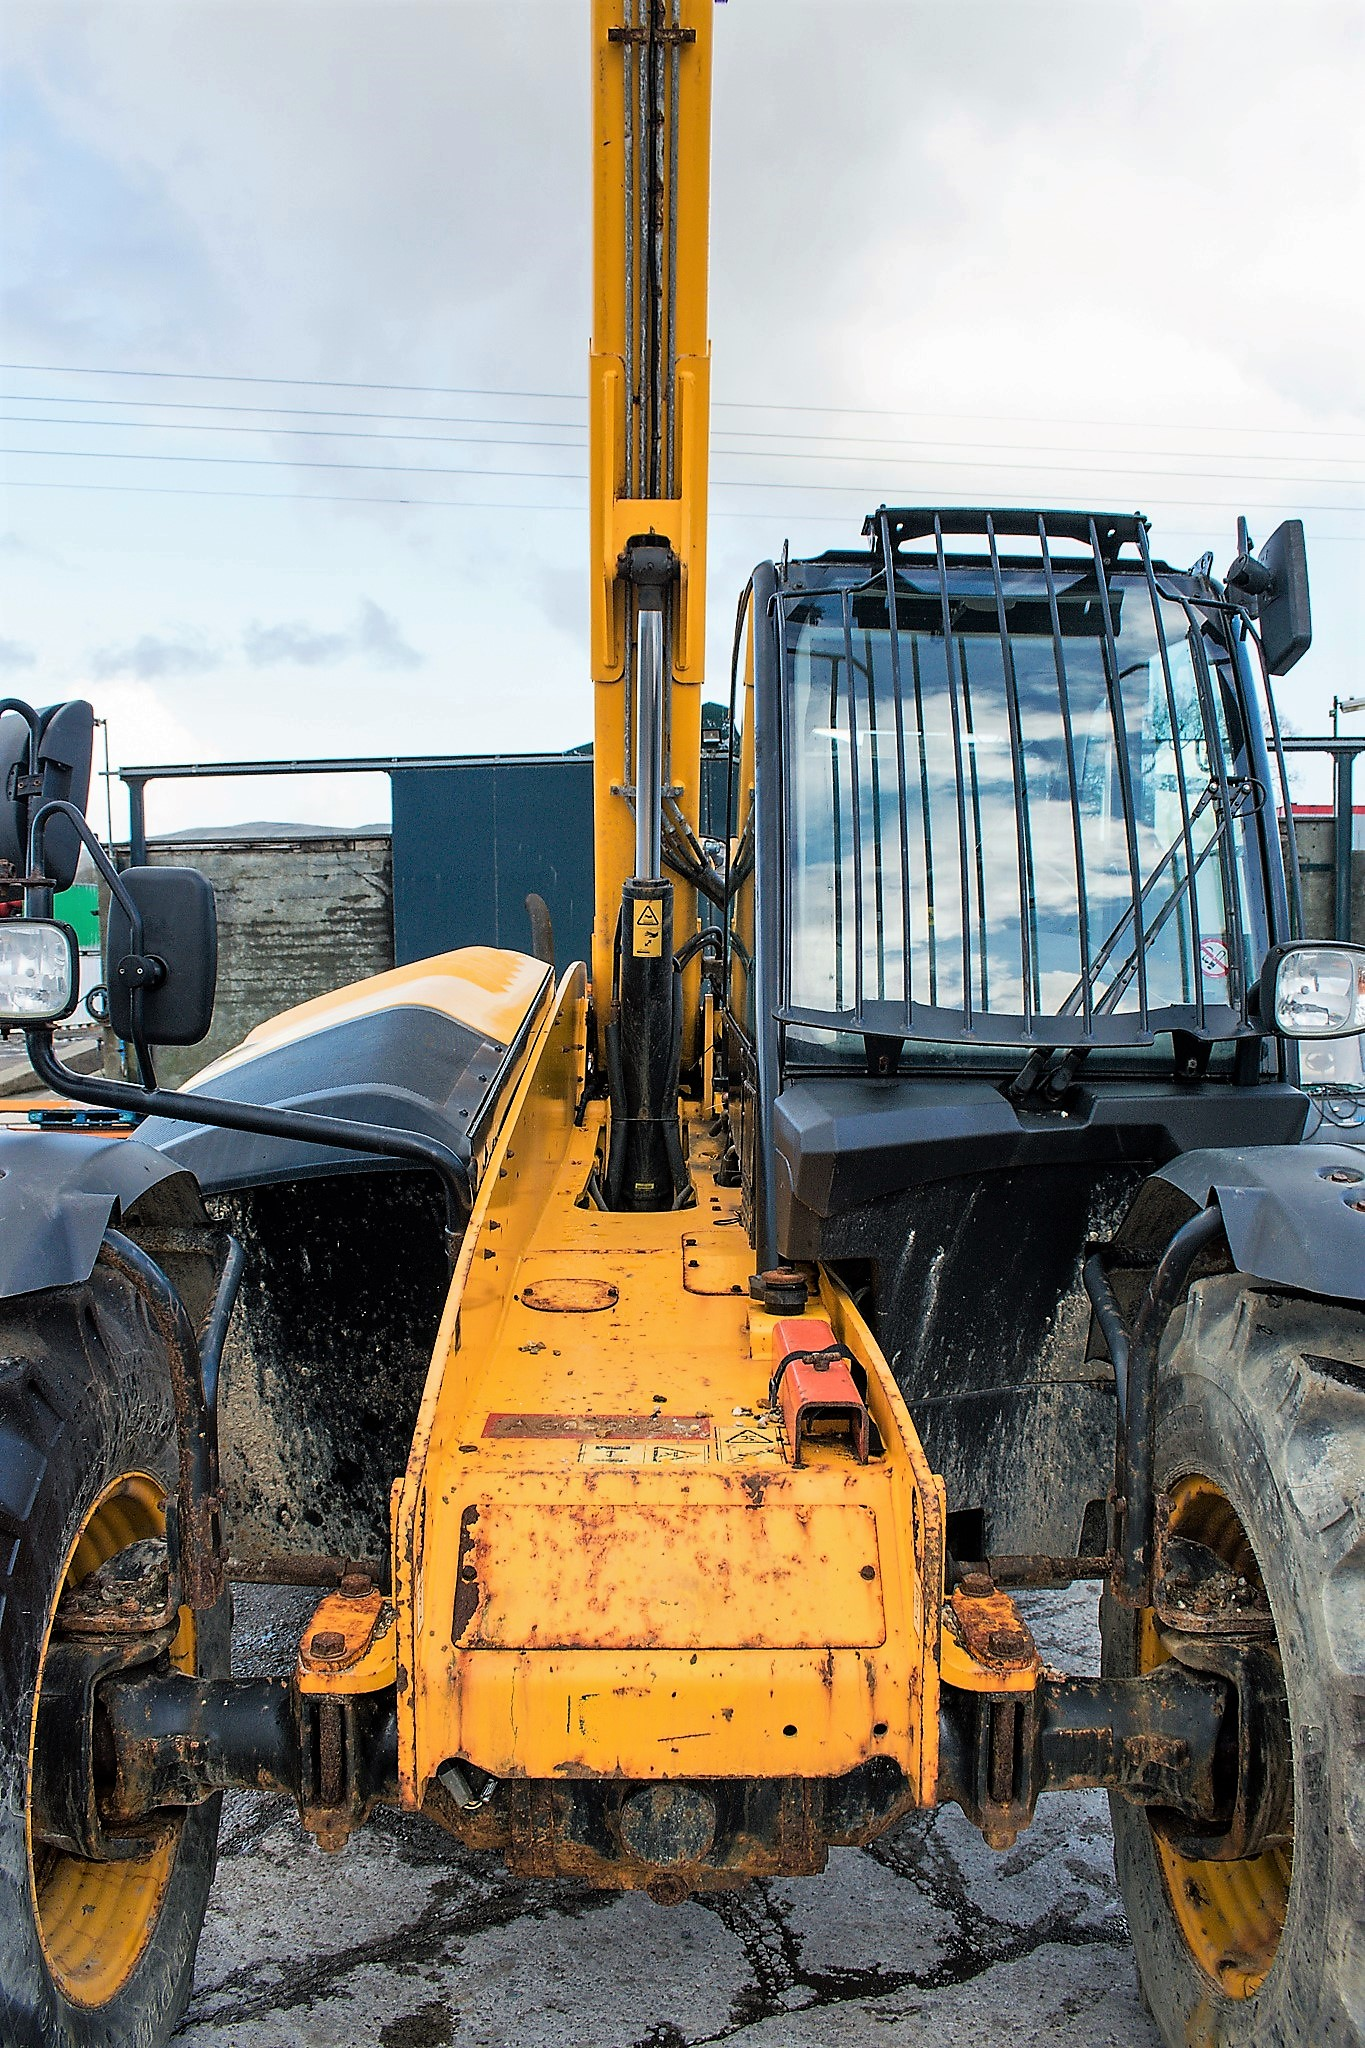 JCB 531-70 7 metre telescopic handler Year: 2013 S/N: 2176575 Reg No: MX13 PHY Recorded Hours: - Image 14 of 19